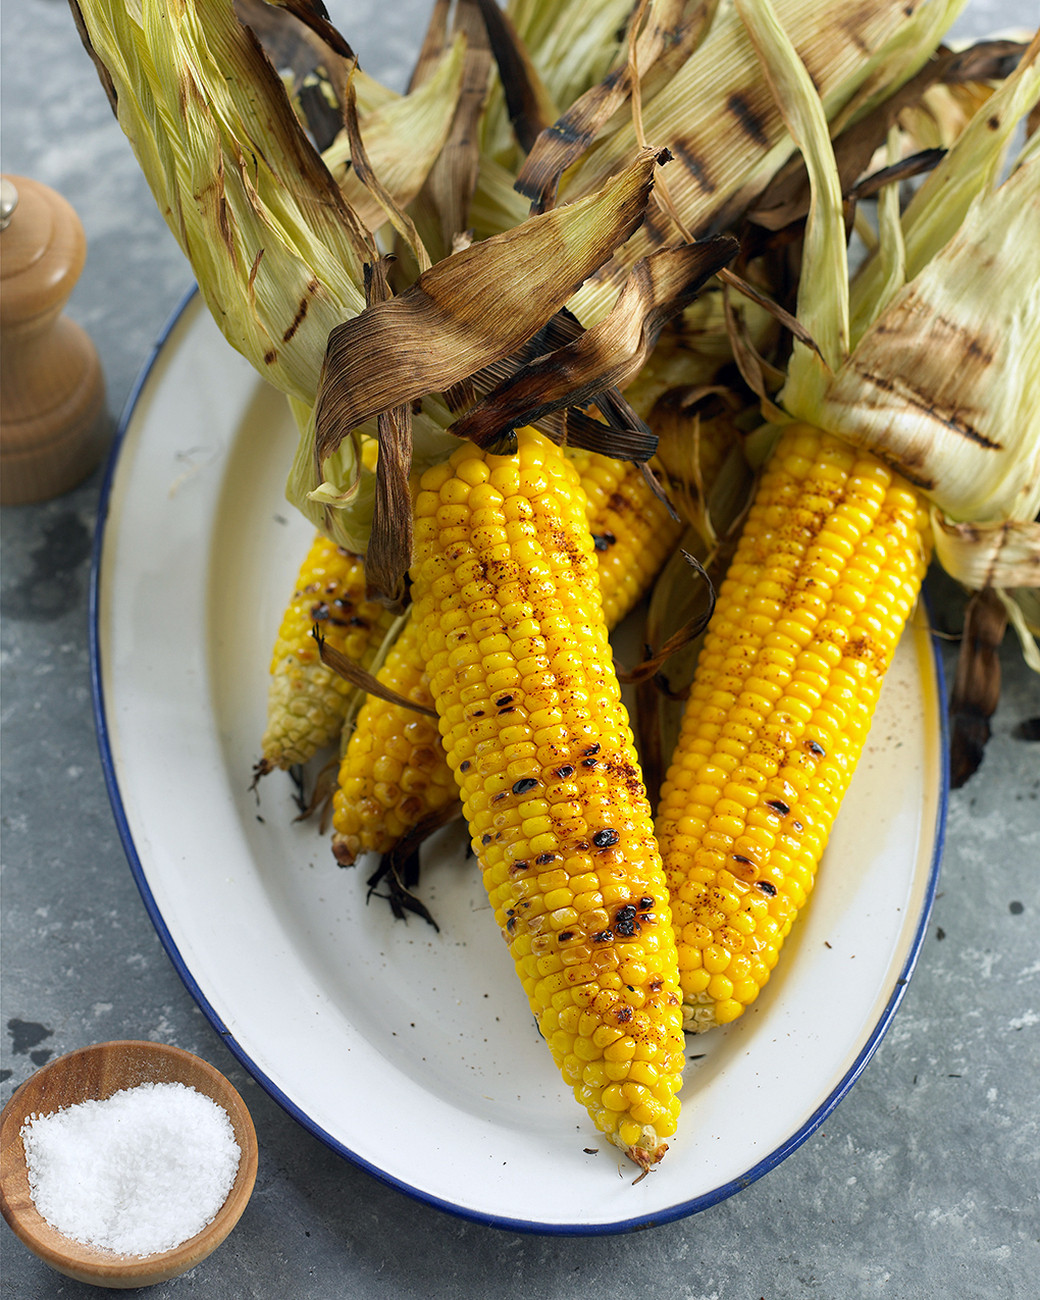 Grilled Corn On The Cob Recipe  Dara Moskowitz Grumdahl's Top 5 Roast Corn Recipes WCCO